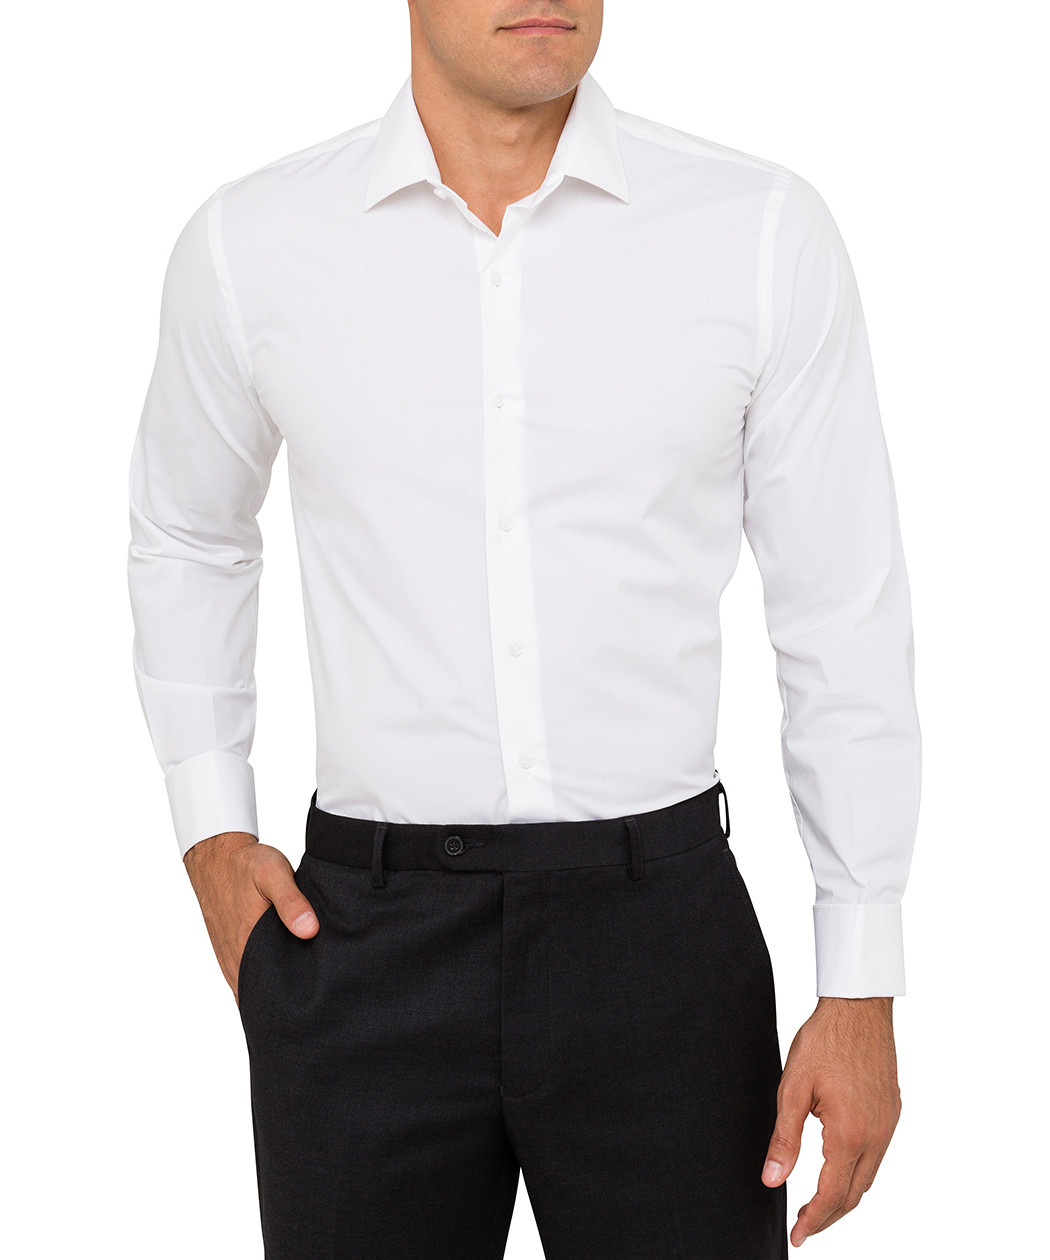 Van Heusen Slim Fit Cotton White Shirt | Van Heusen Shirts | Van ...